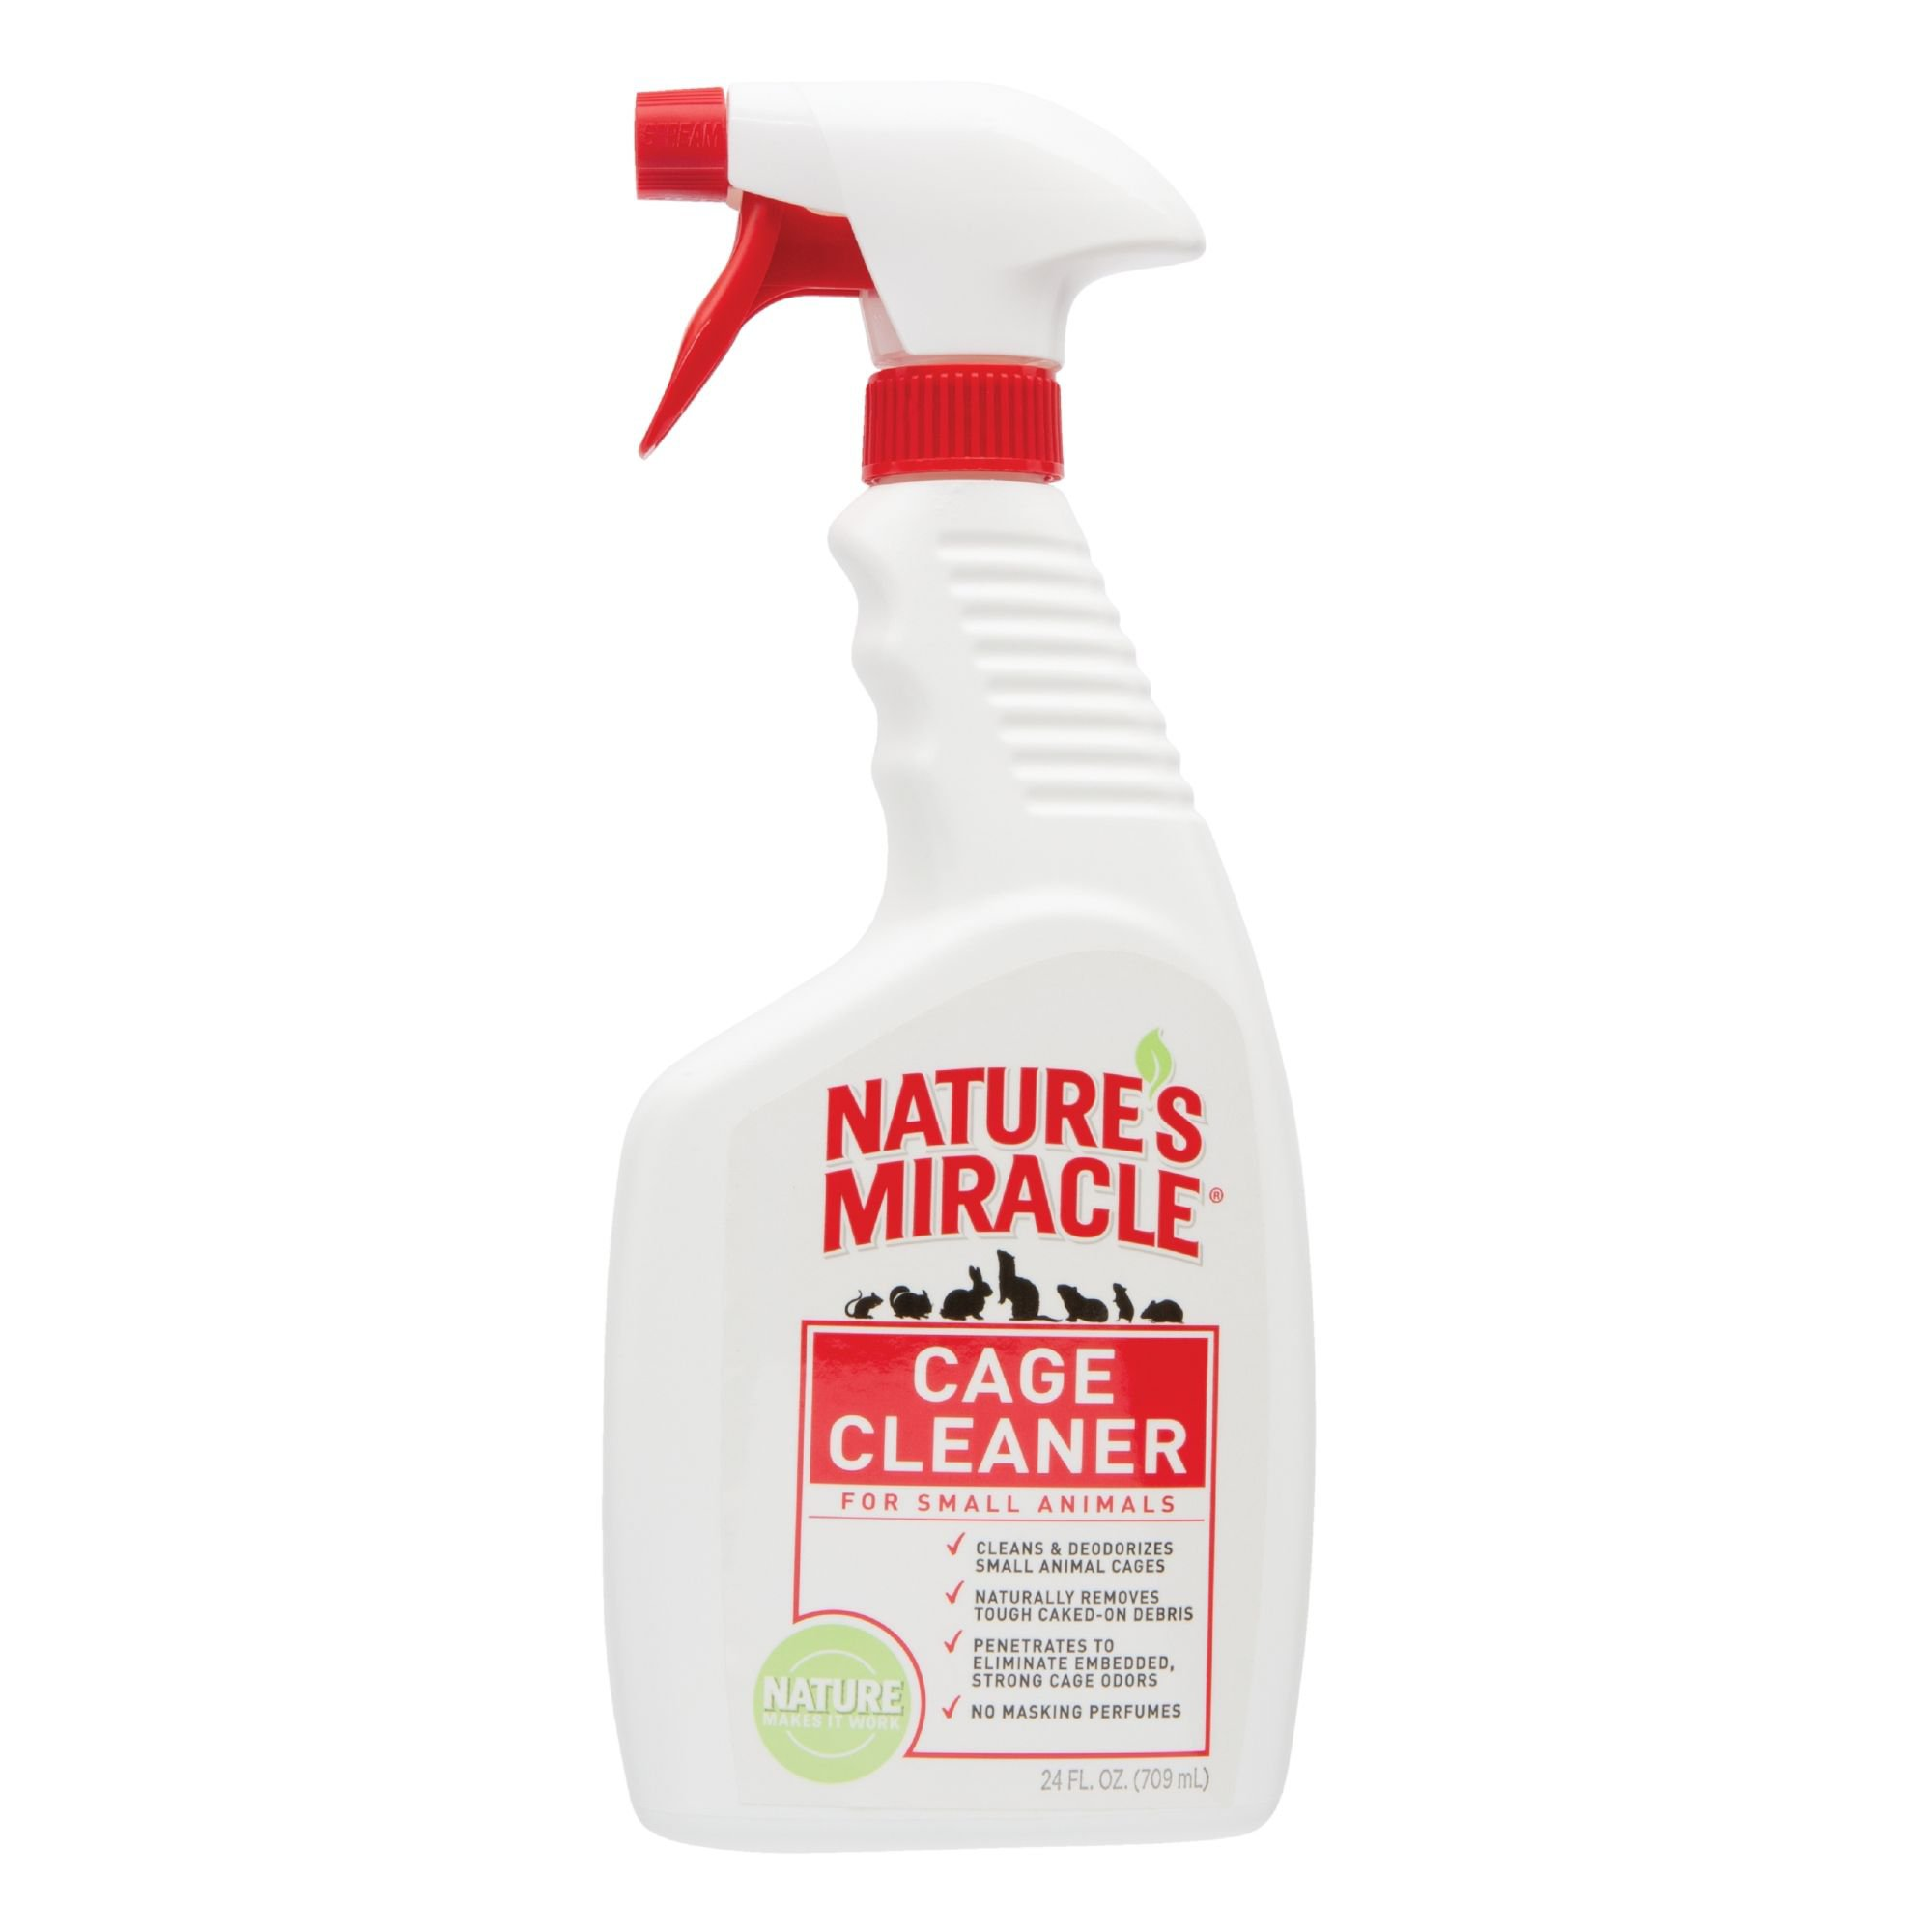 Nature's Miracle Cage Cleaner for Small Animals